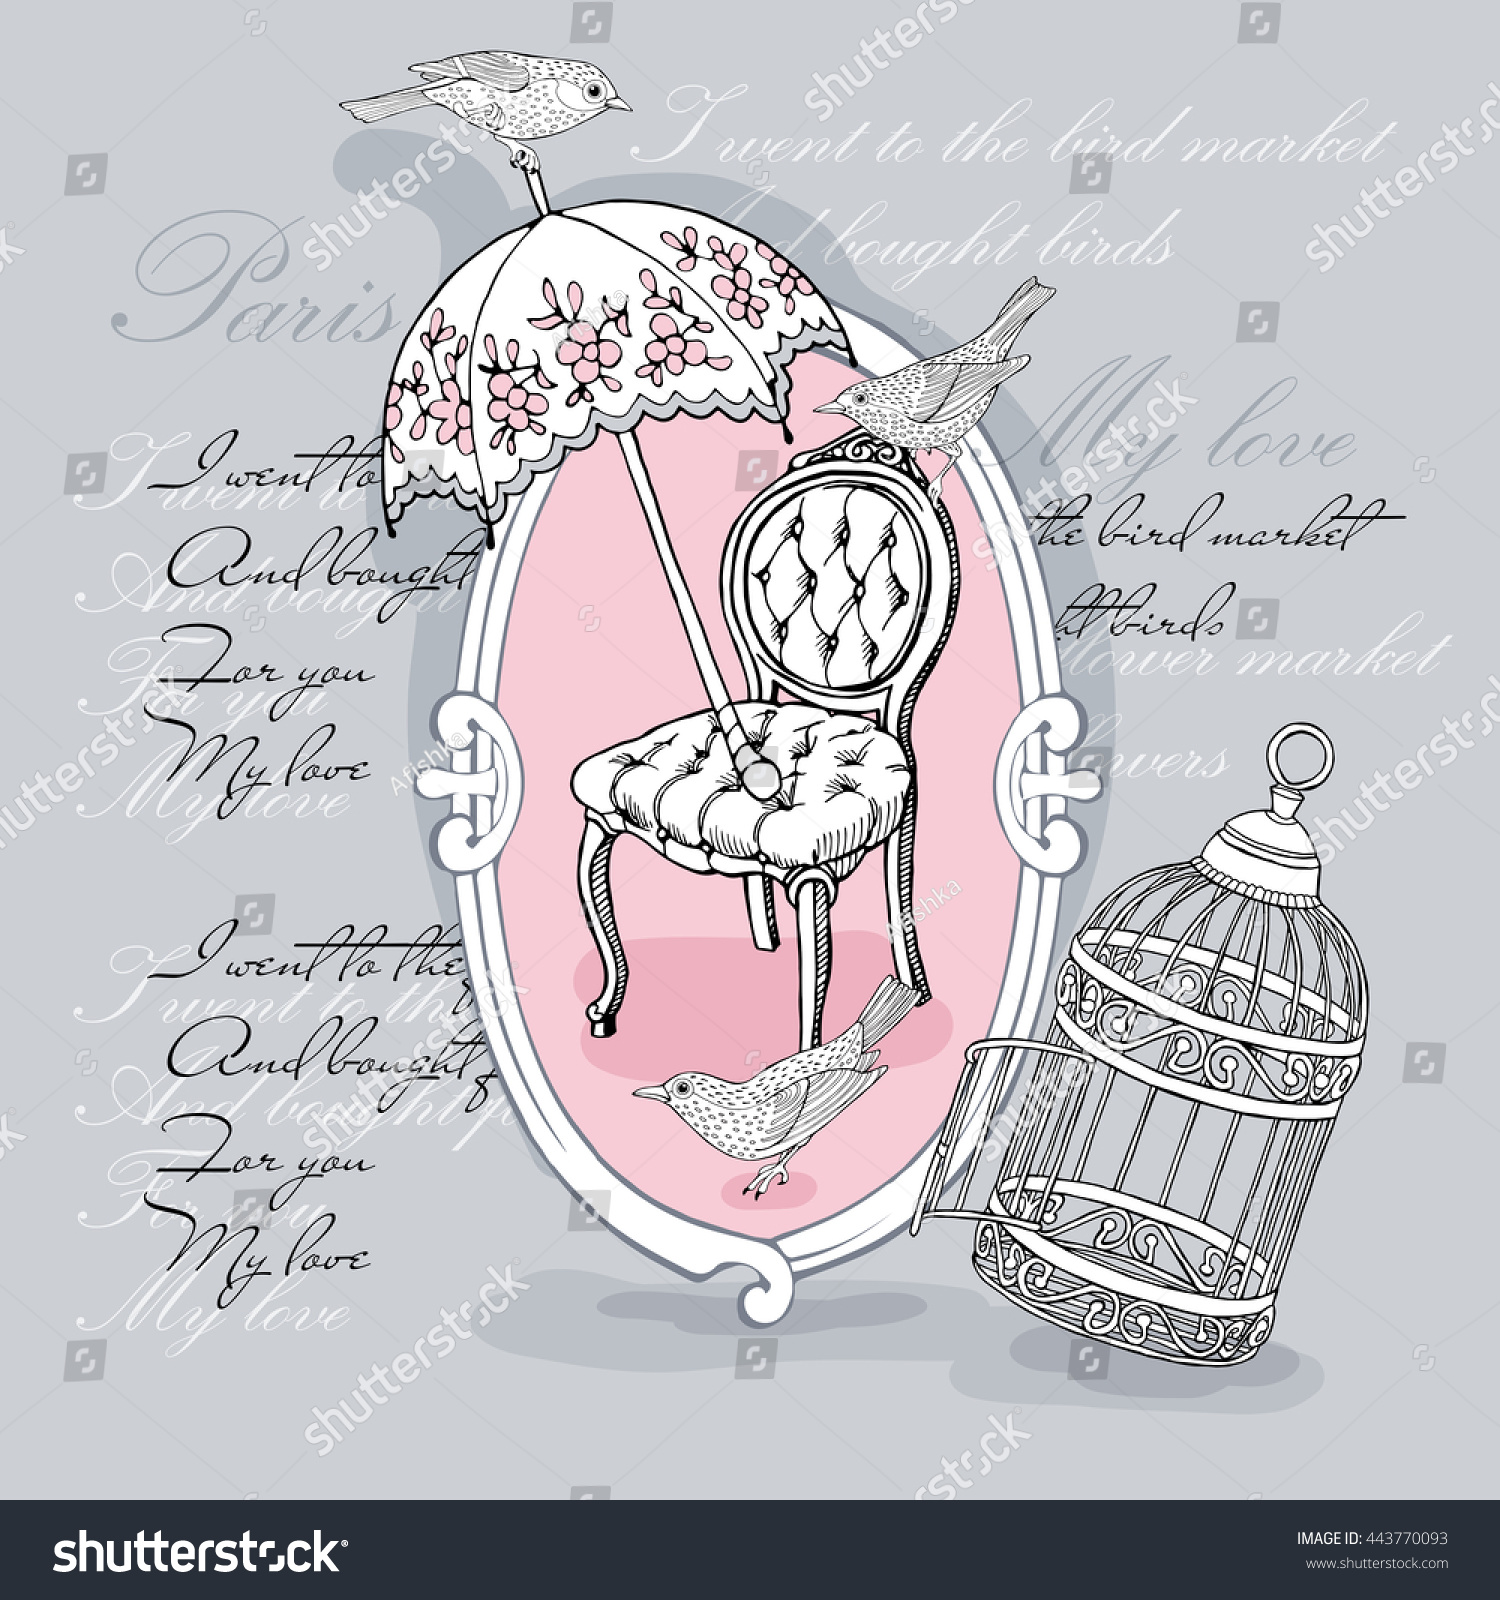 Romantic card with image of a vintage chair birds cage and umbrella on gray background Vector illustration